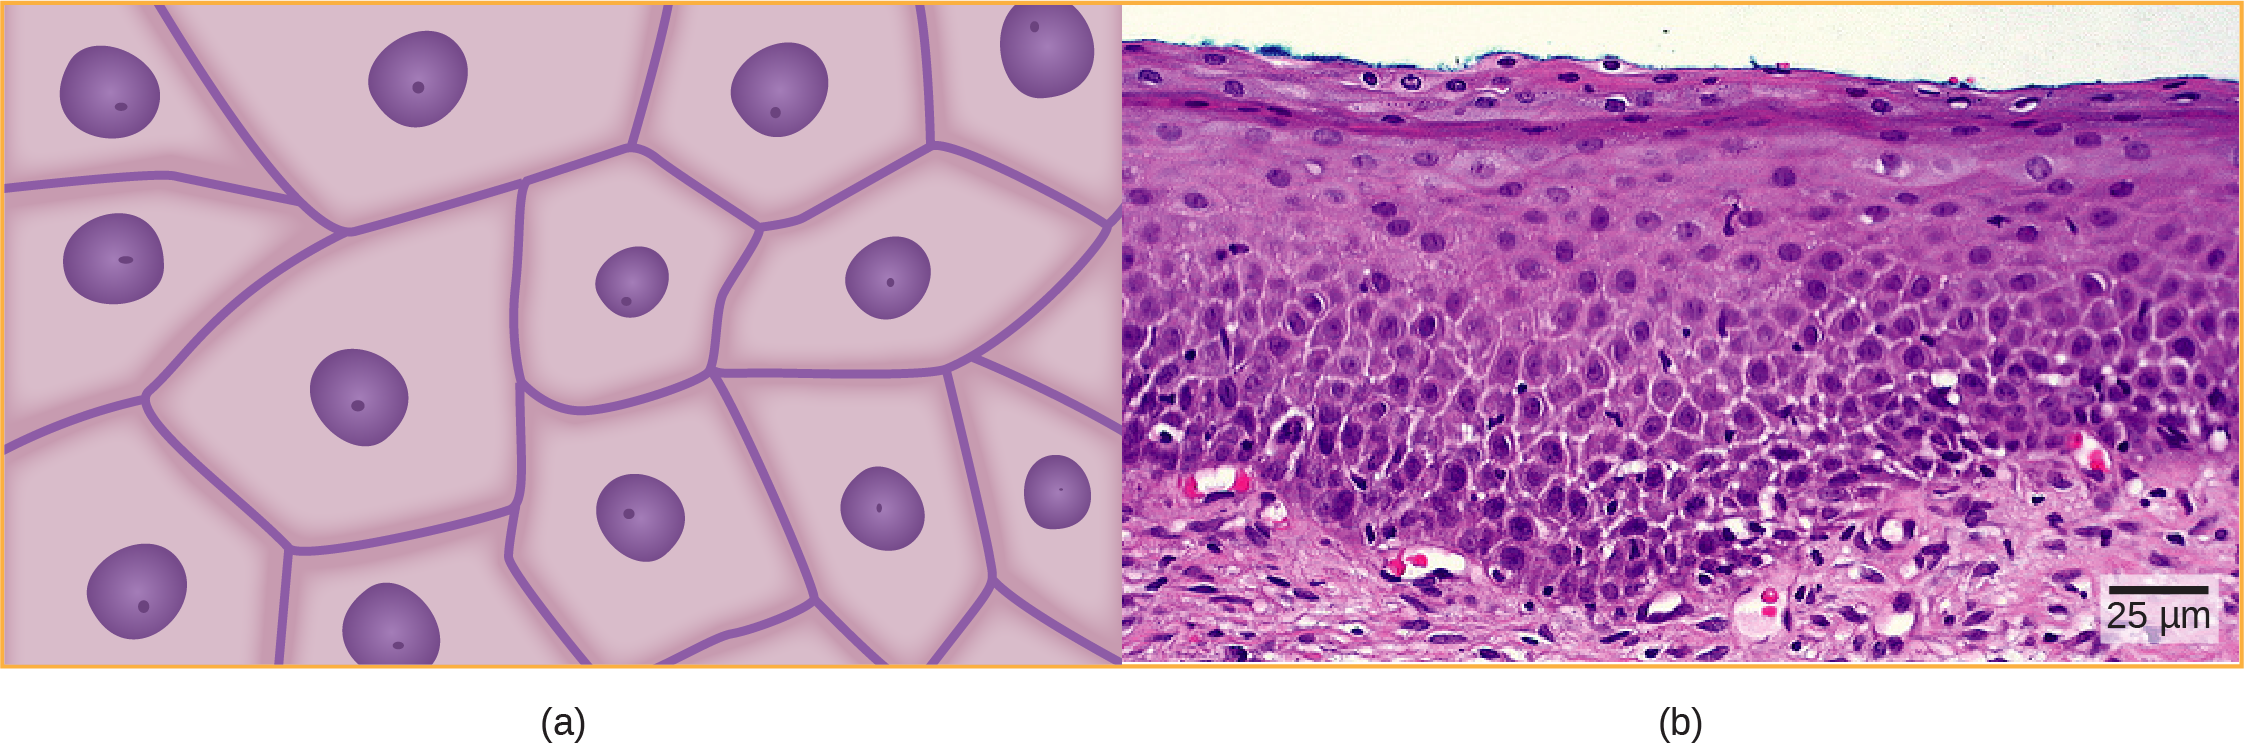 Illustration A shows irregularly shaped cells with a central nucleus. Micrograph B shows a cross section of squamous cells from the human cervix. In the upper layer the cells appear to be tightly packed. In they middle layer they appear to be more loosely packed, and in the lower layer they are flatter and elongated.